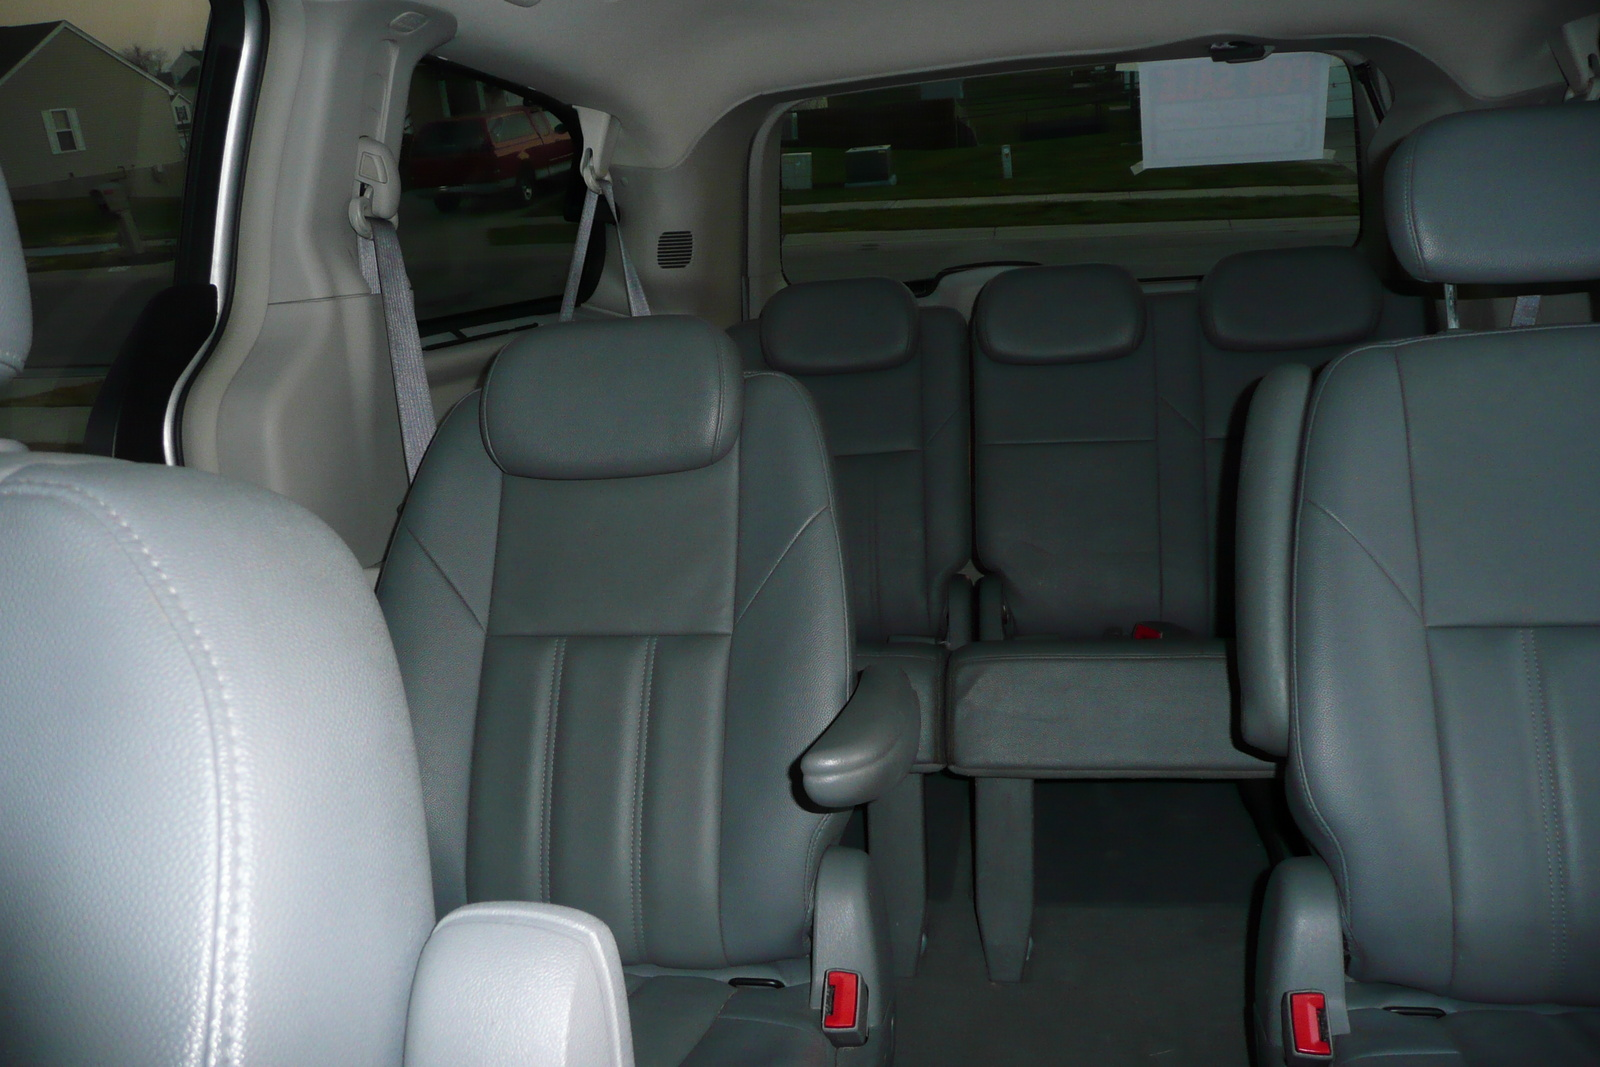 2010 Dodge Grand Caravan >> 2008 Chrysler Town & Country - Pictures - CarGurus